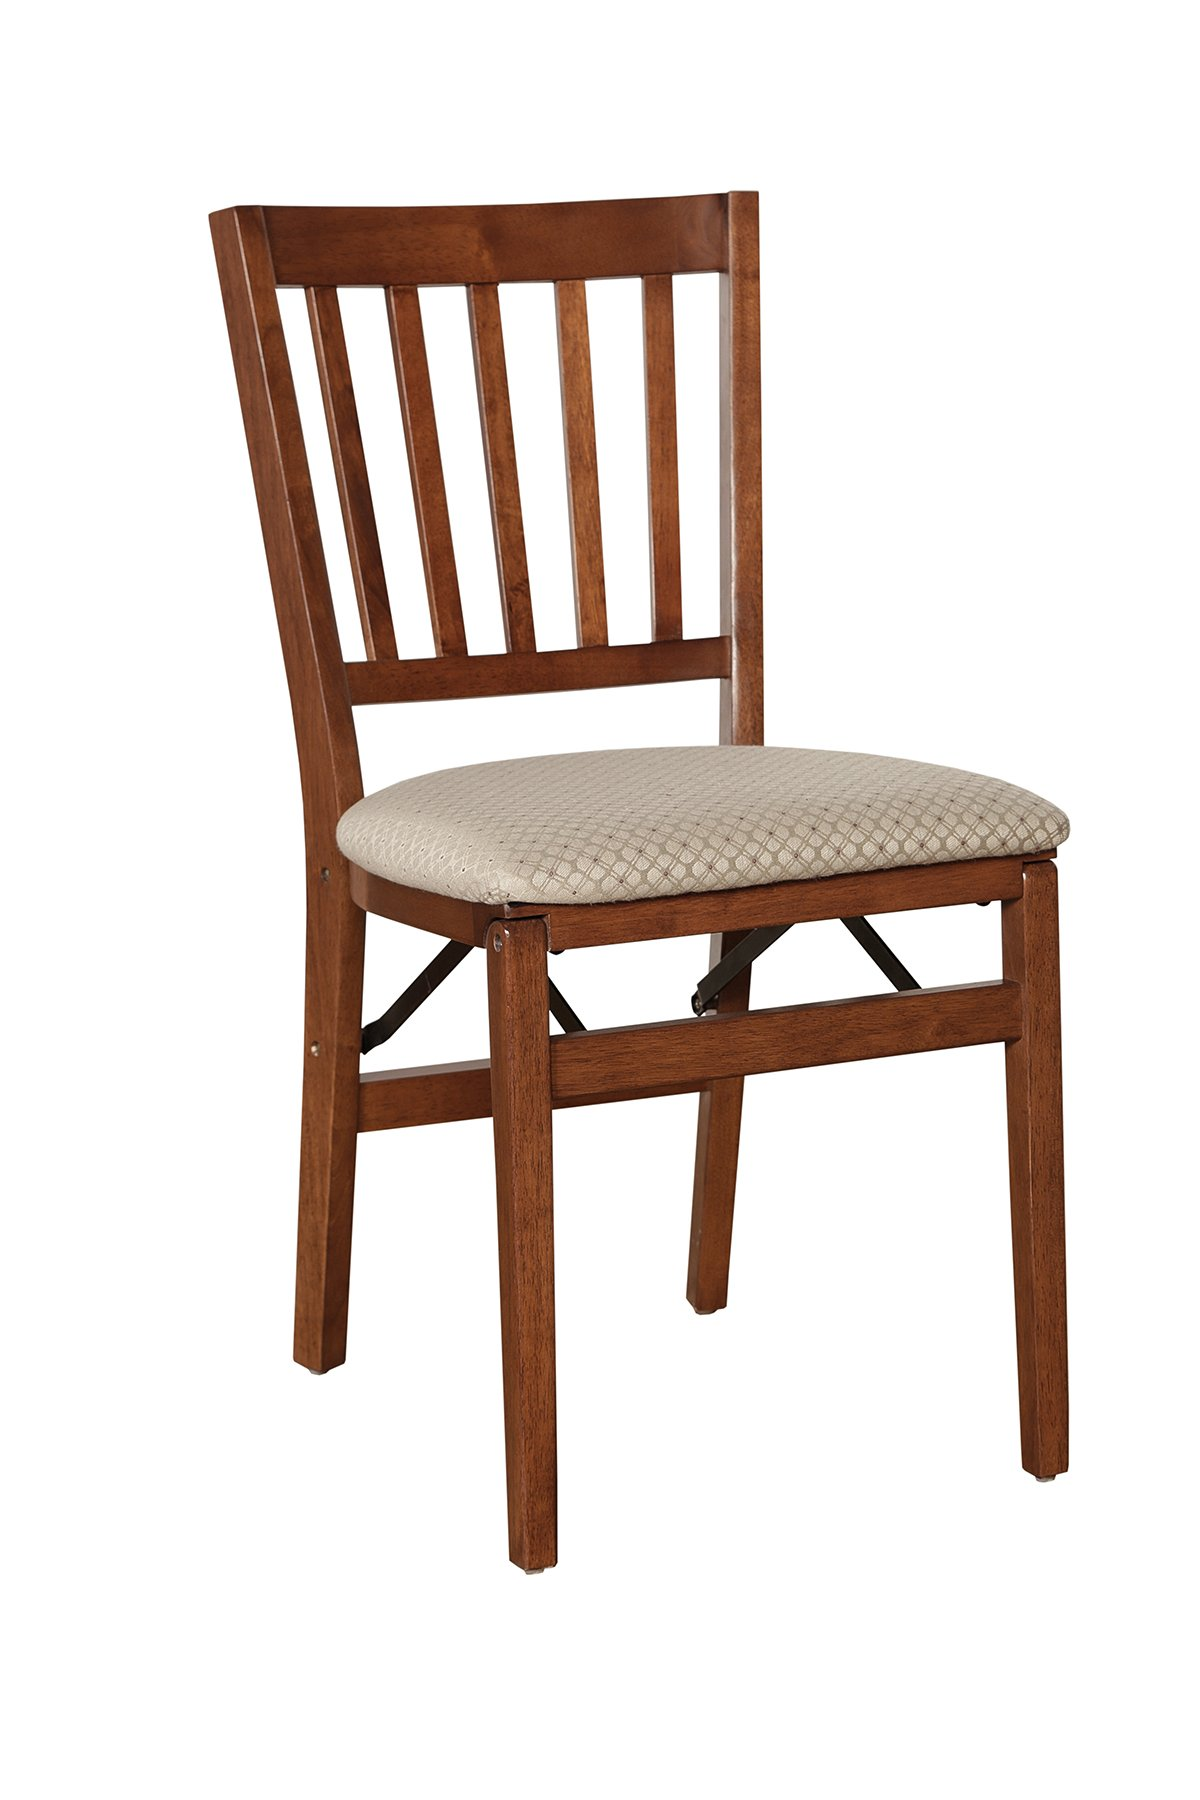 Stakmore School House Folding Chair Finish, Set of 2, Cherry by MECO (Image #1)